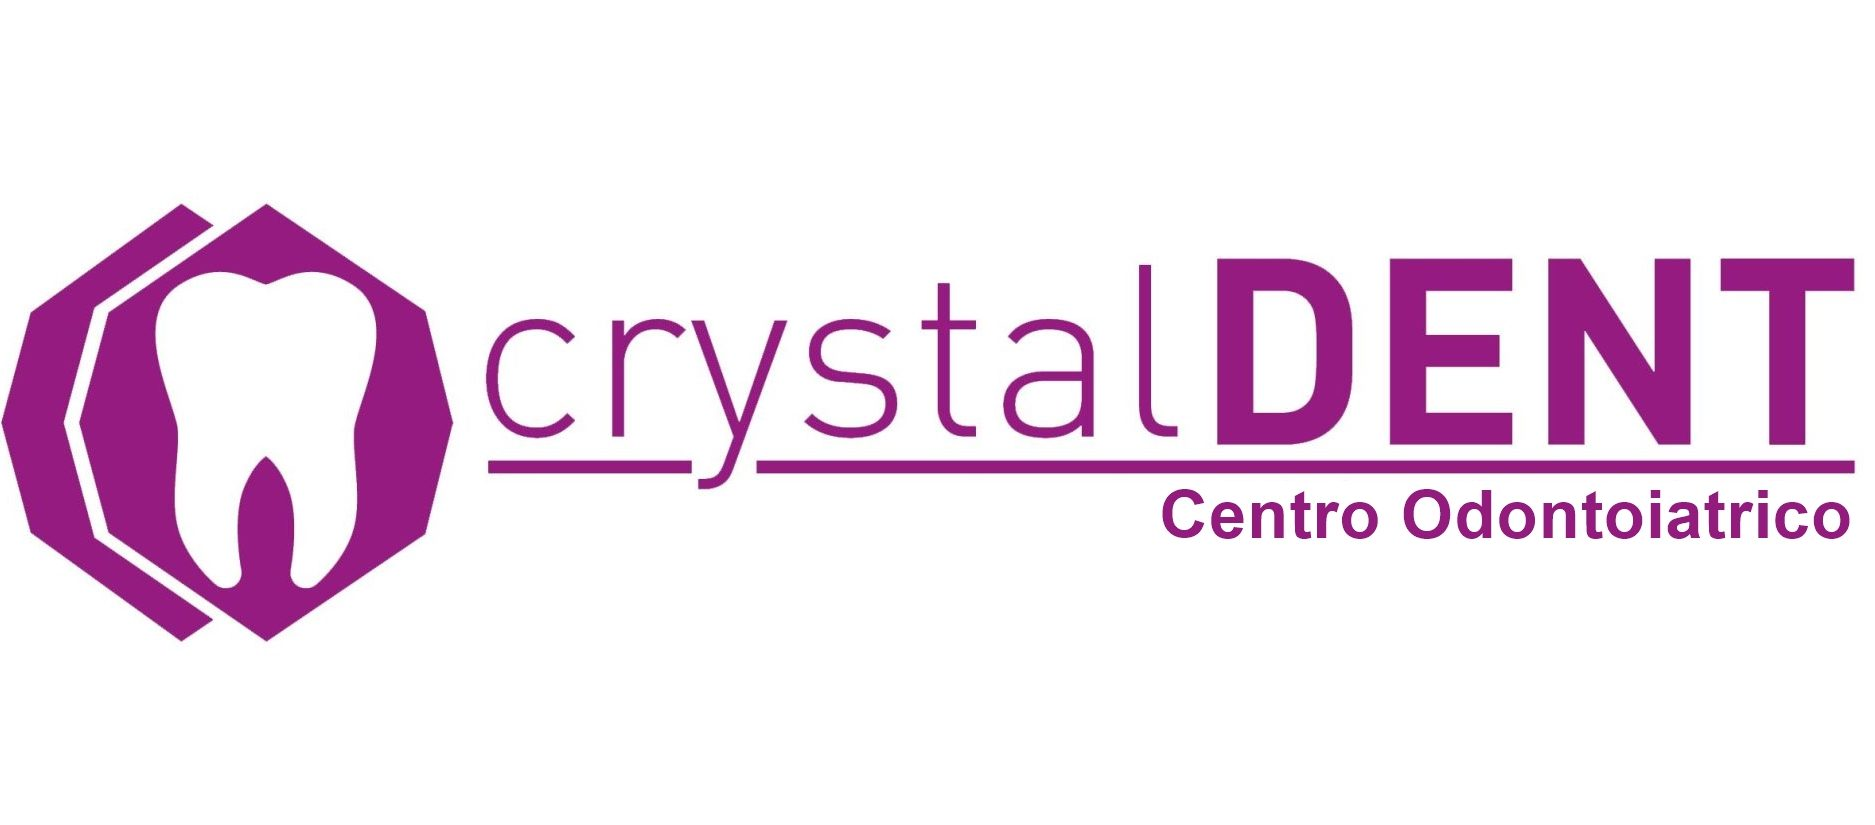 CrystalDent